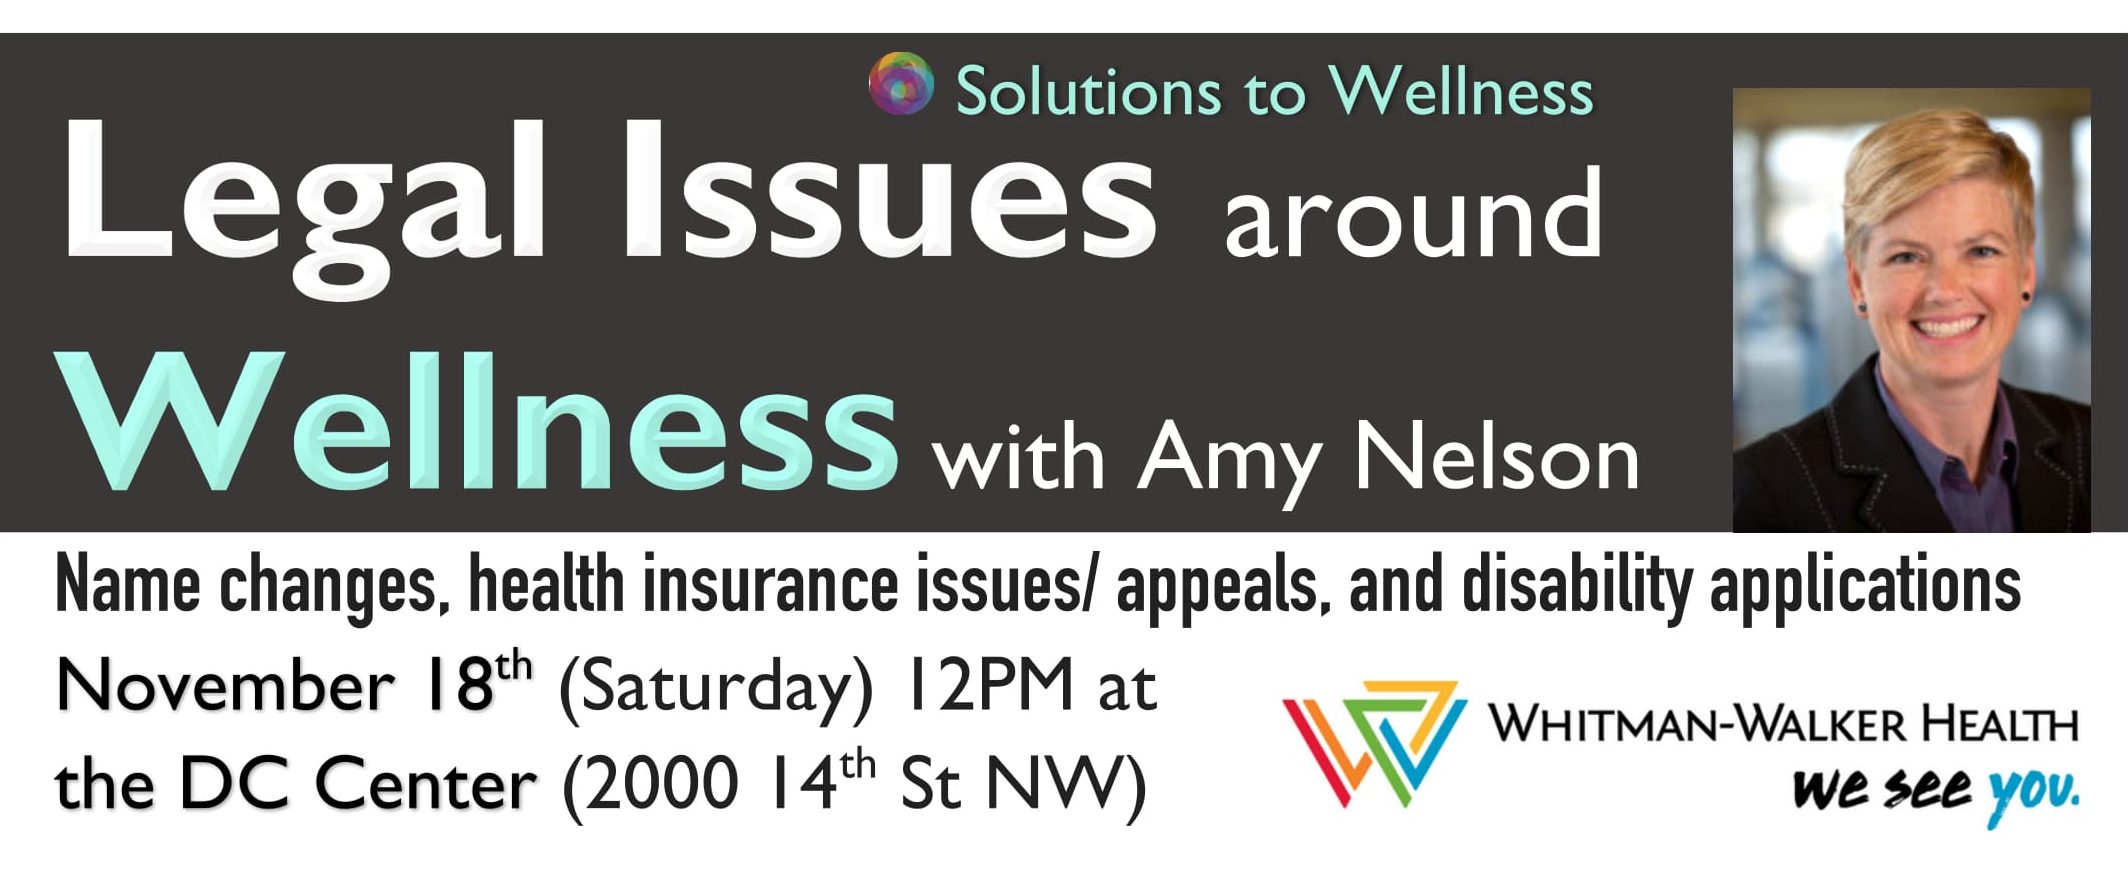 Legal Issues around Wellness with Whitman-Walker Health [Solutions to Wellness Conference]